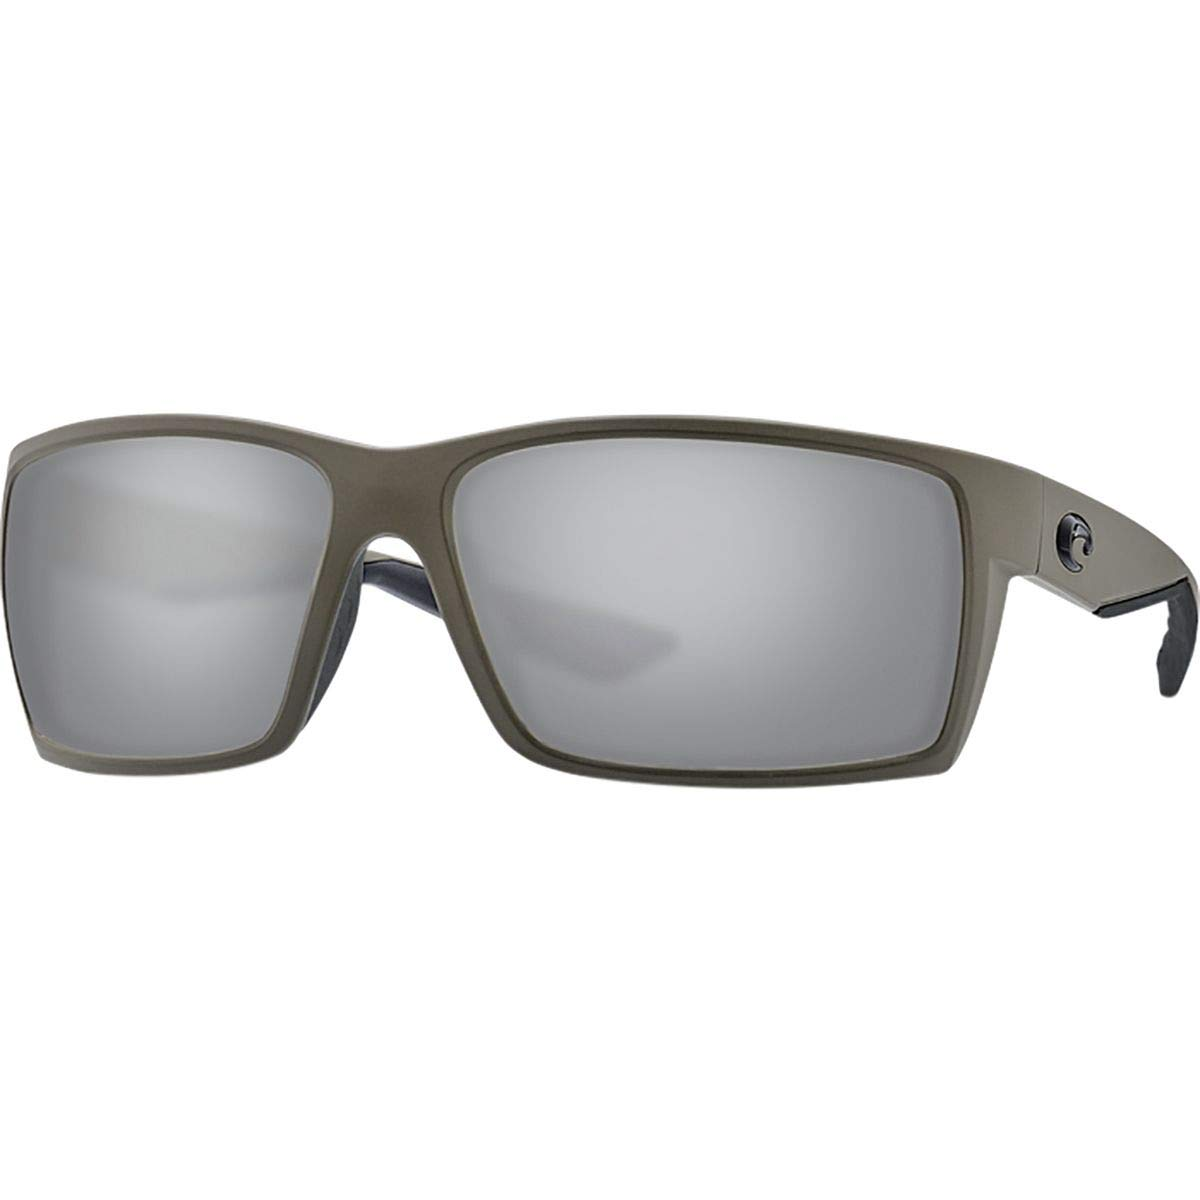 Costa Reefton 580p Polarized Sunglasses Moss Gray 580p One Size At